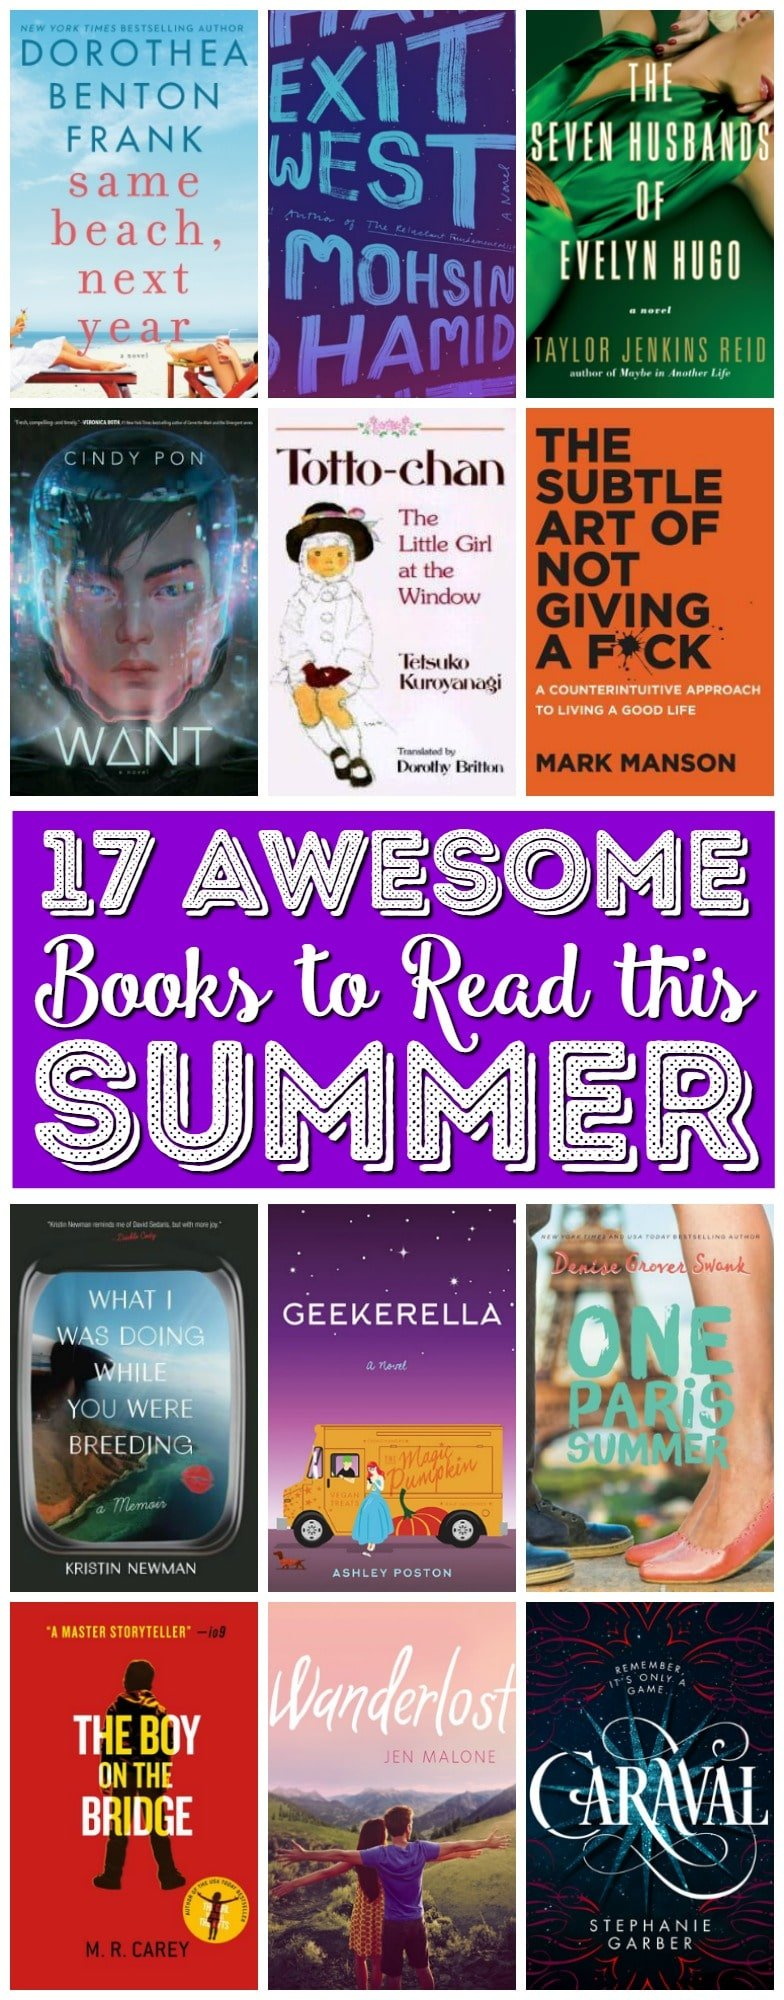 These 17 Books To Read This Summer are filled with love, action, advice, and so much more! They're the perfect companion for a day at the beach, a flight, or an afternoon lounging in the hammock. via @sugarandsoulco